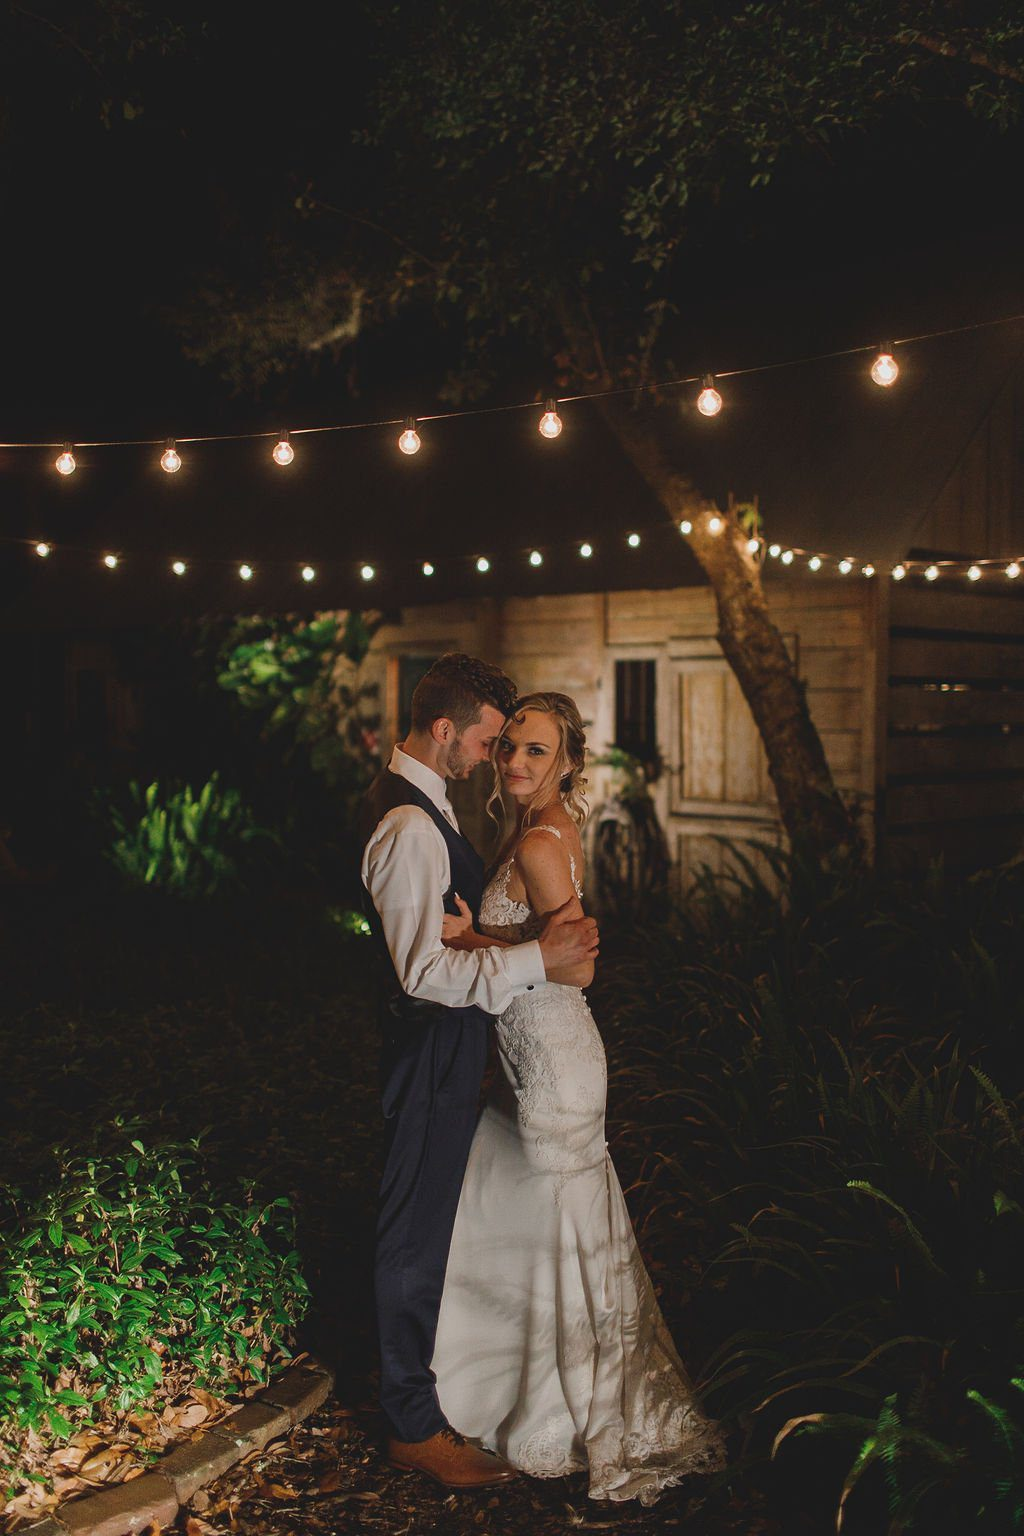 Megan + Nathaniel's Romantic Enchanted Forest Wedding